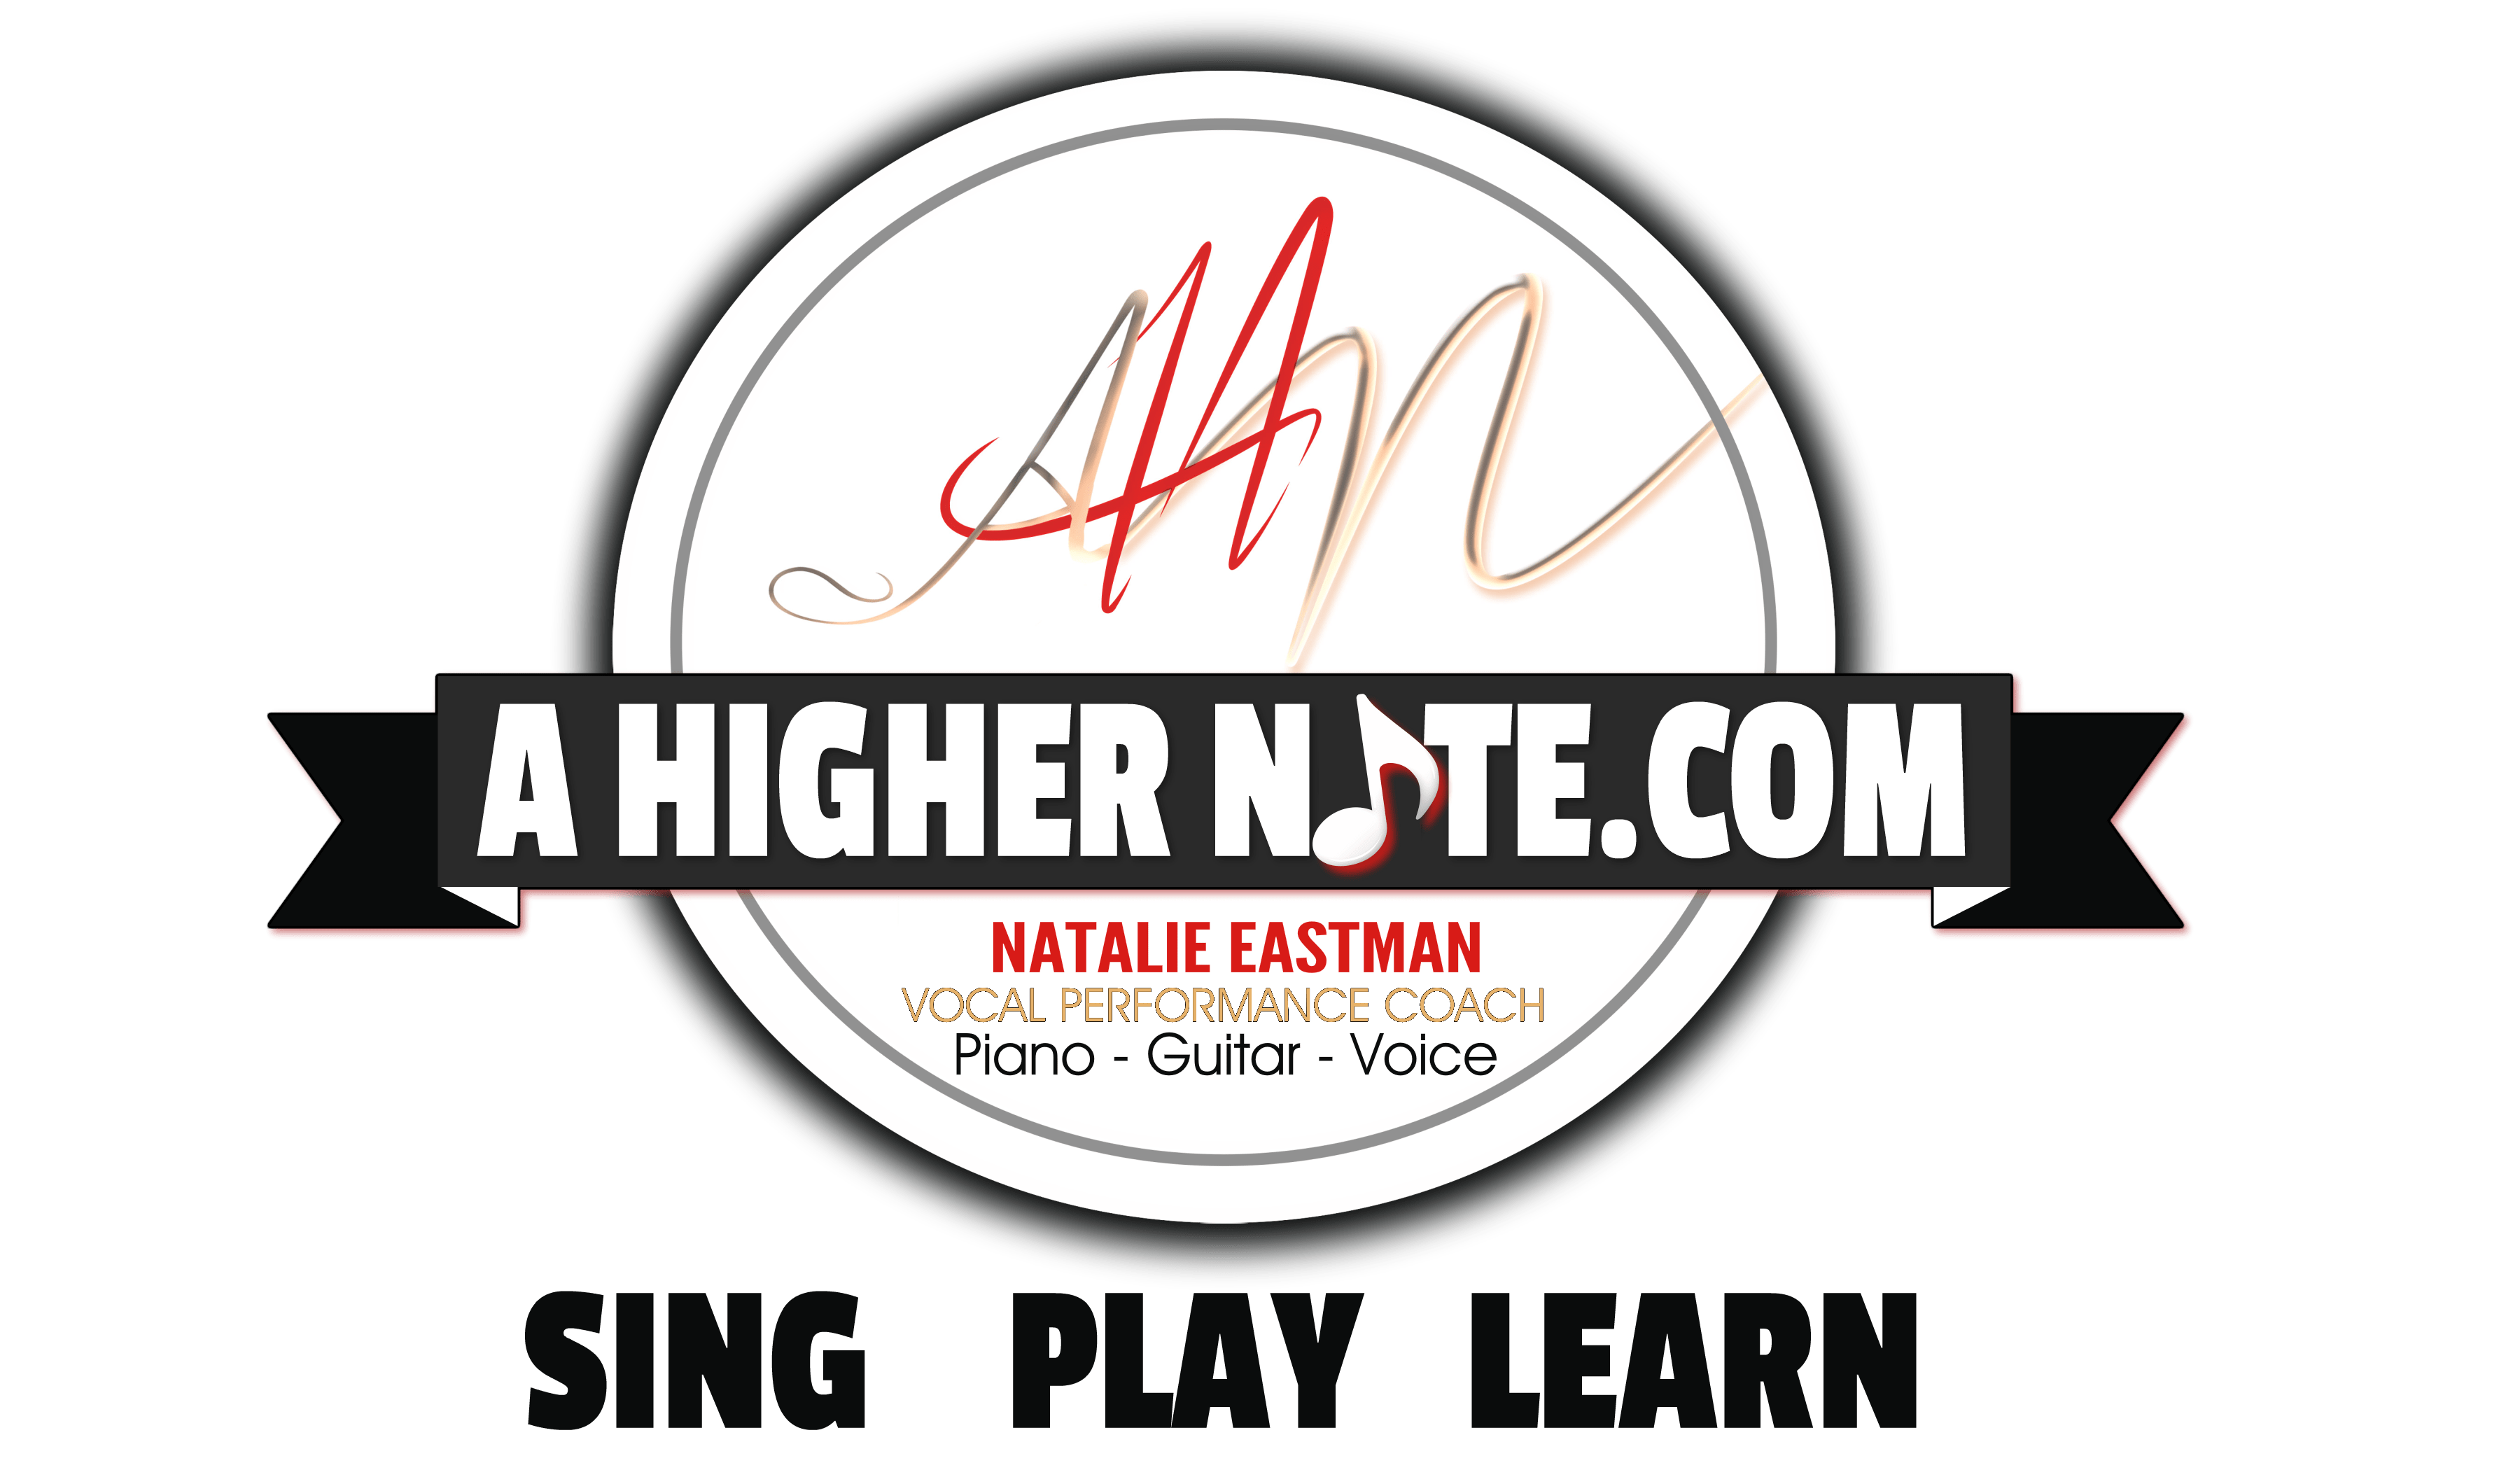 A Higher Note LLC